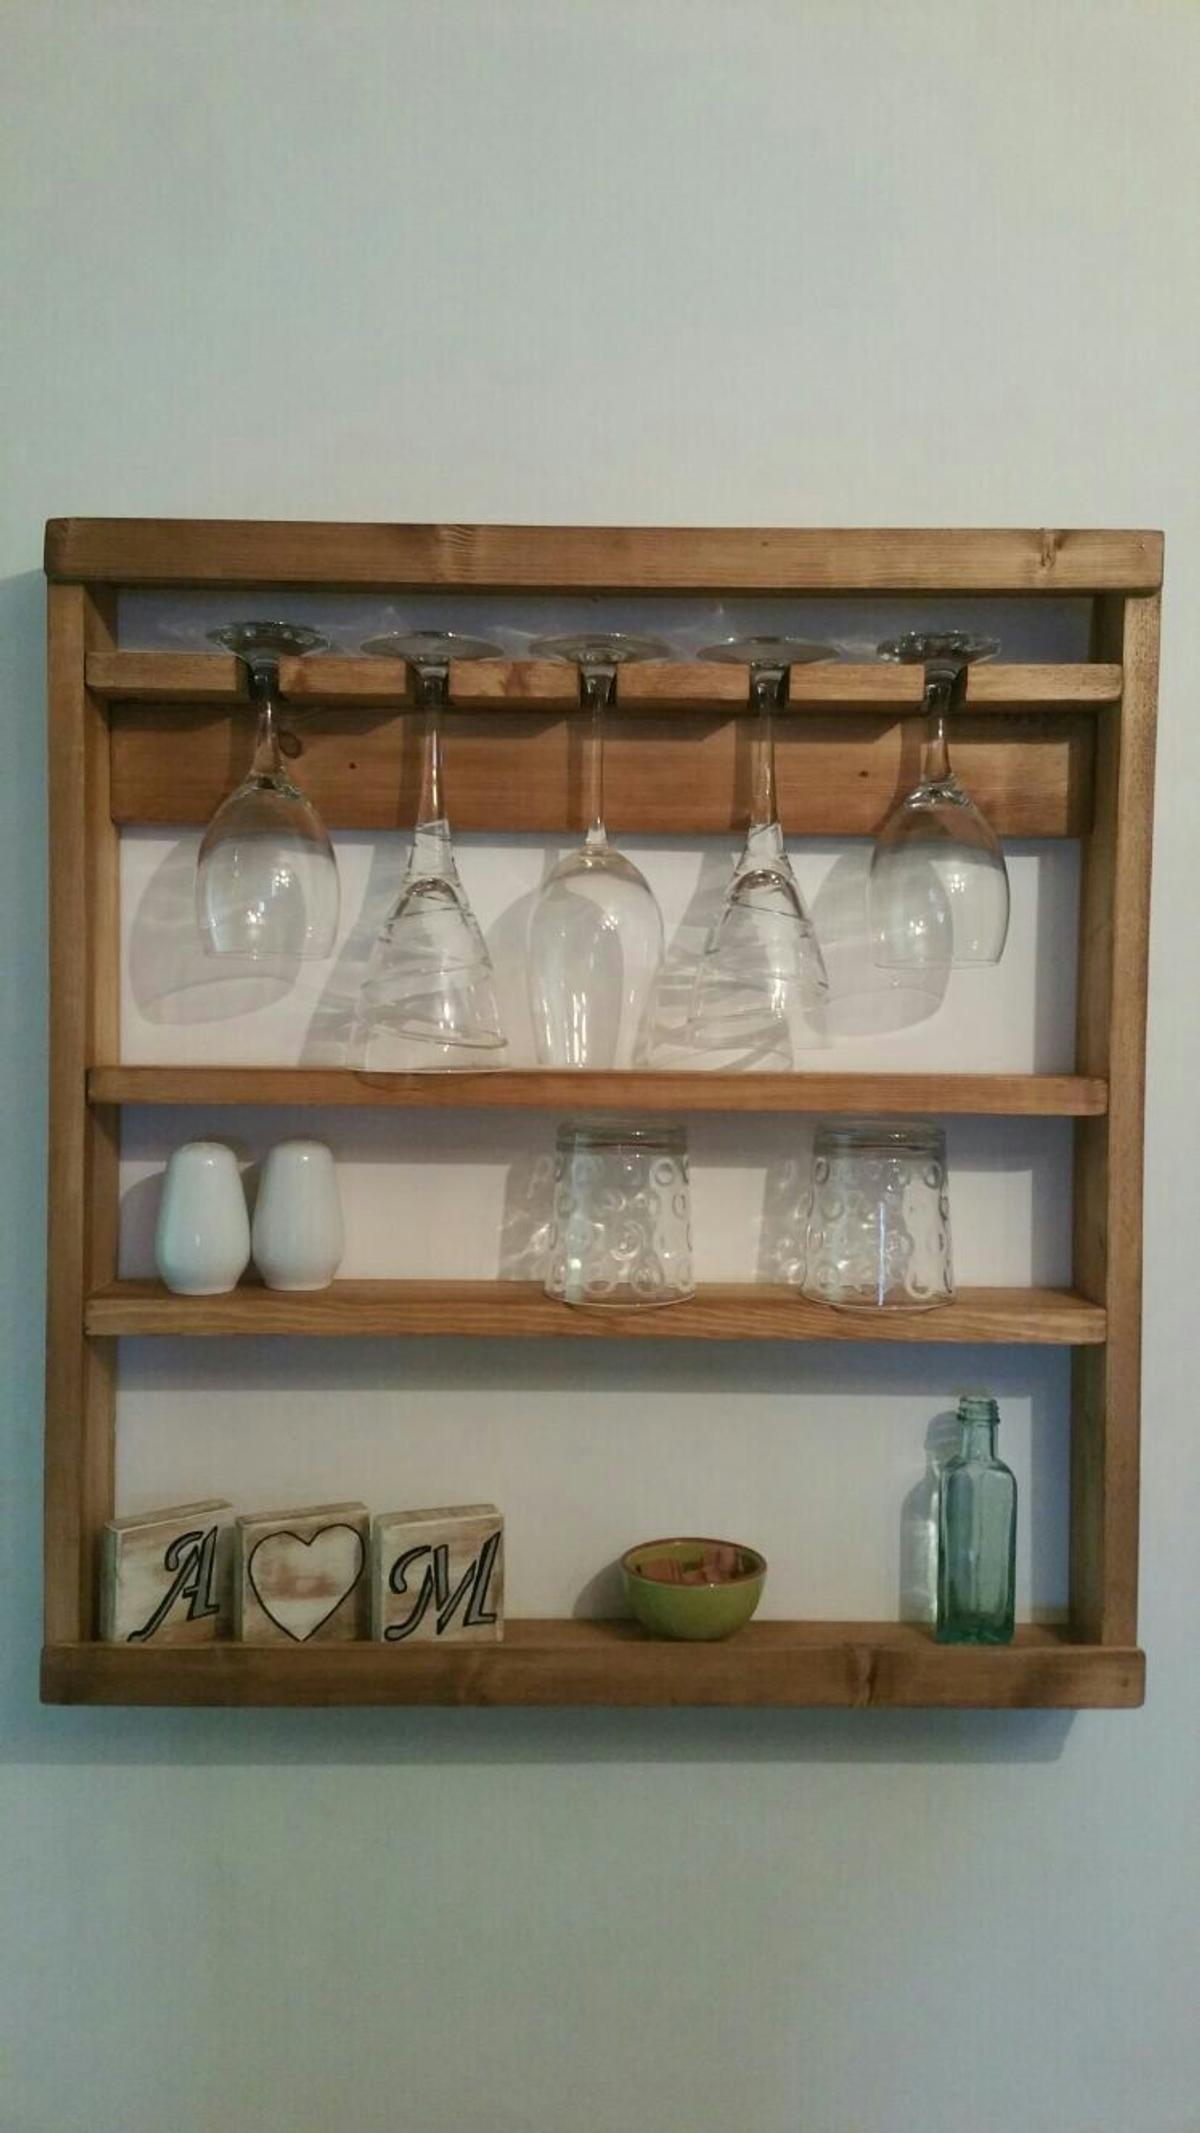 Wooden Wall Mounted Shelving Unit